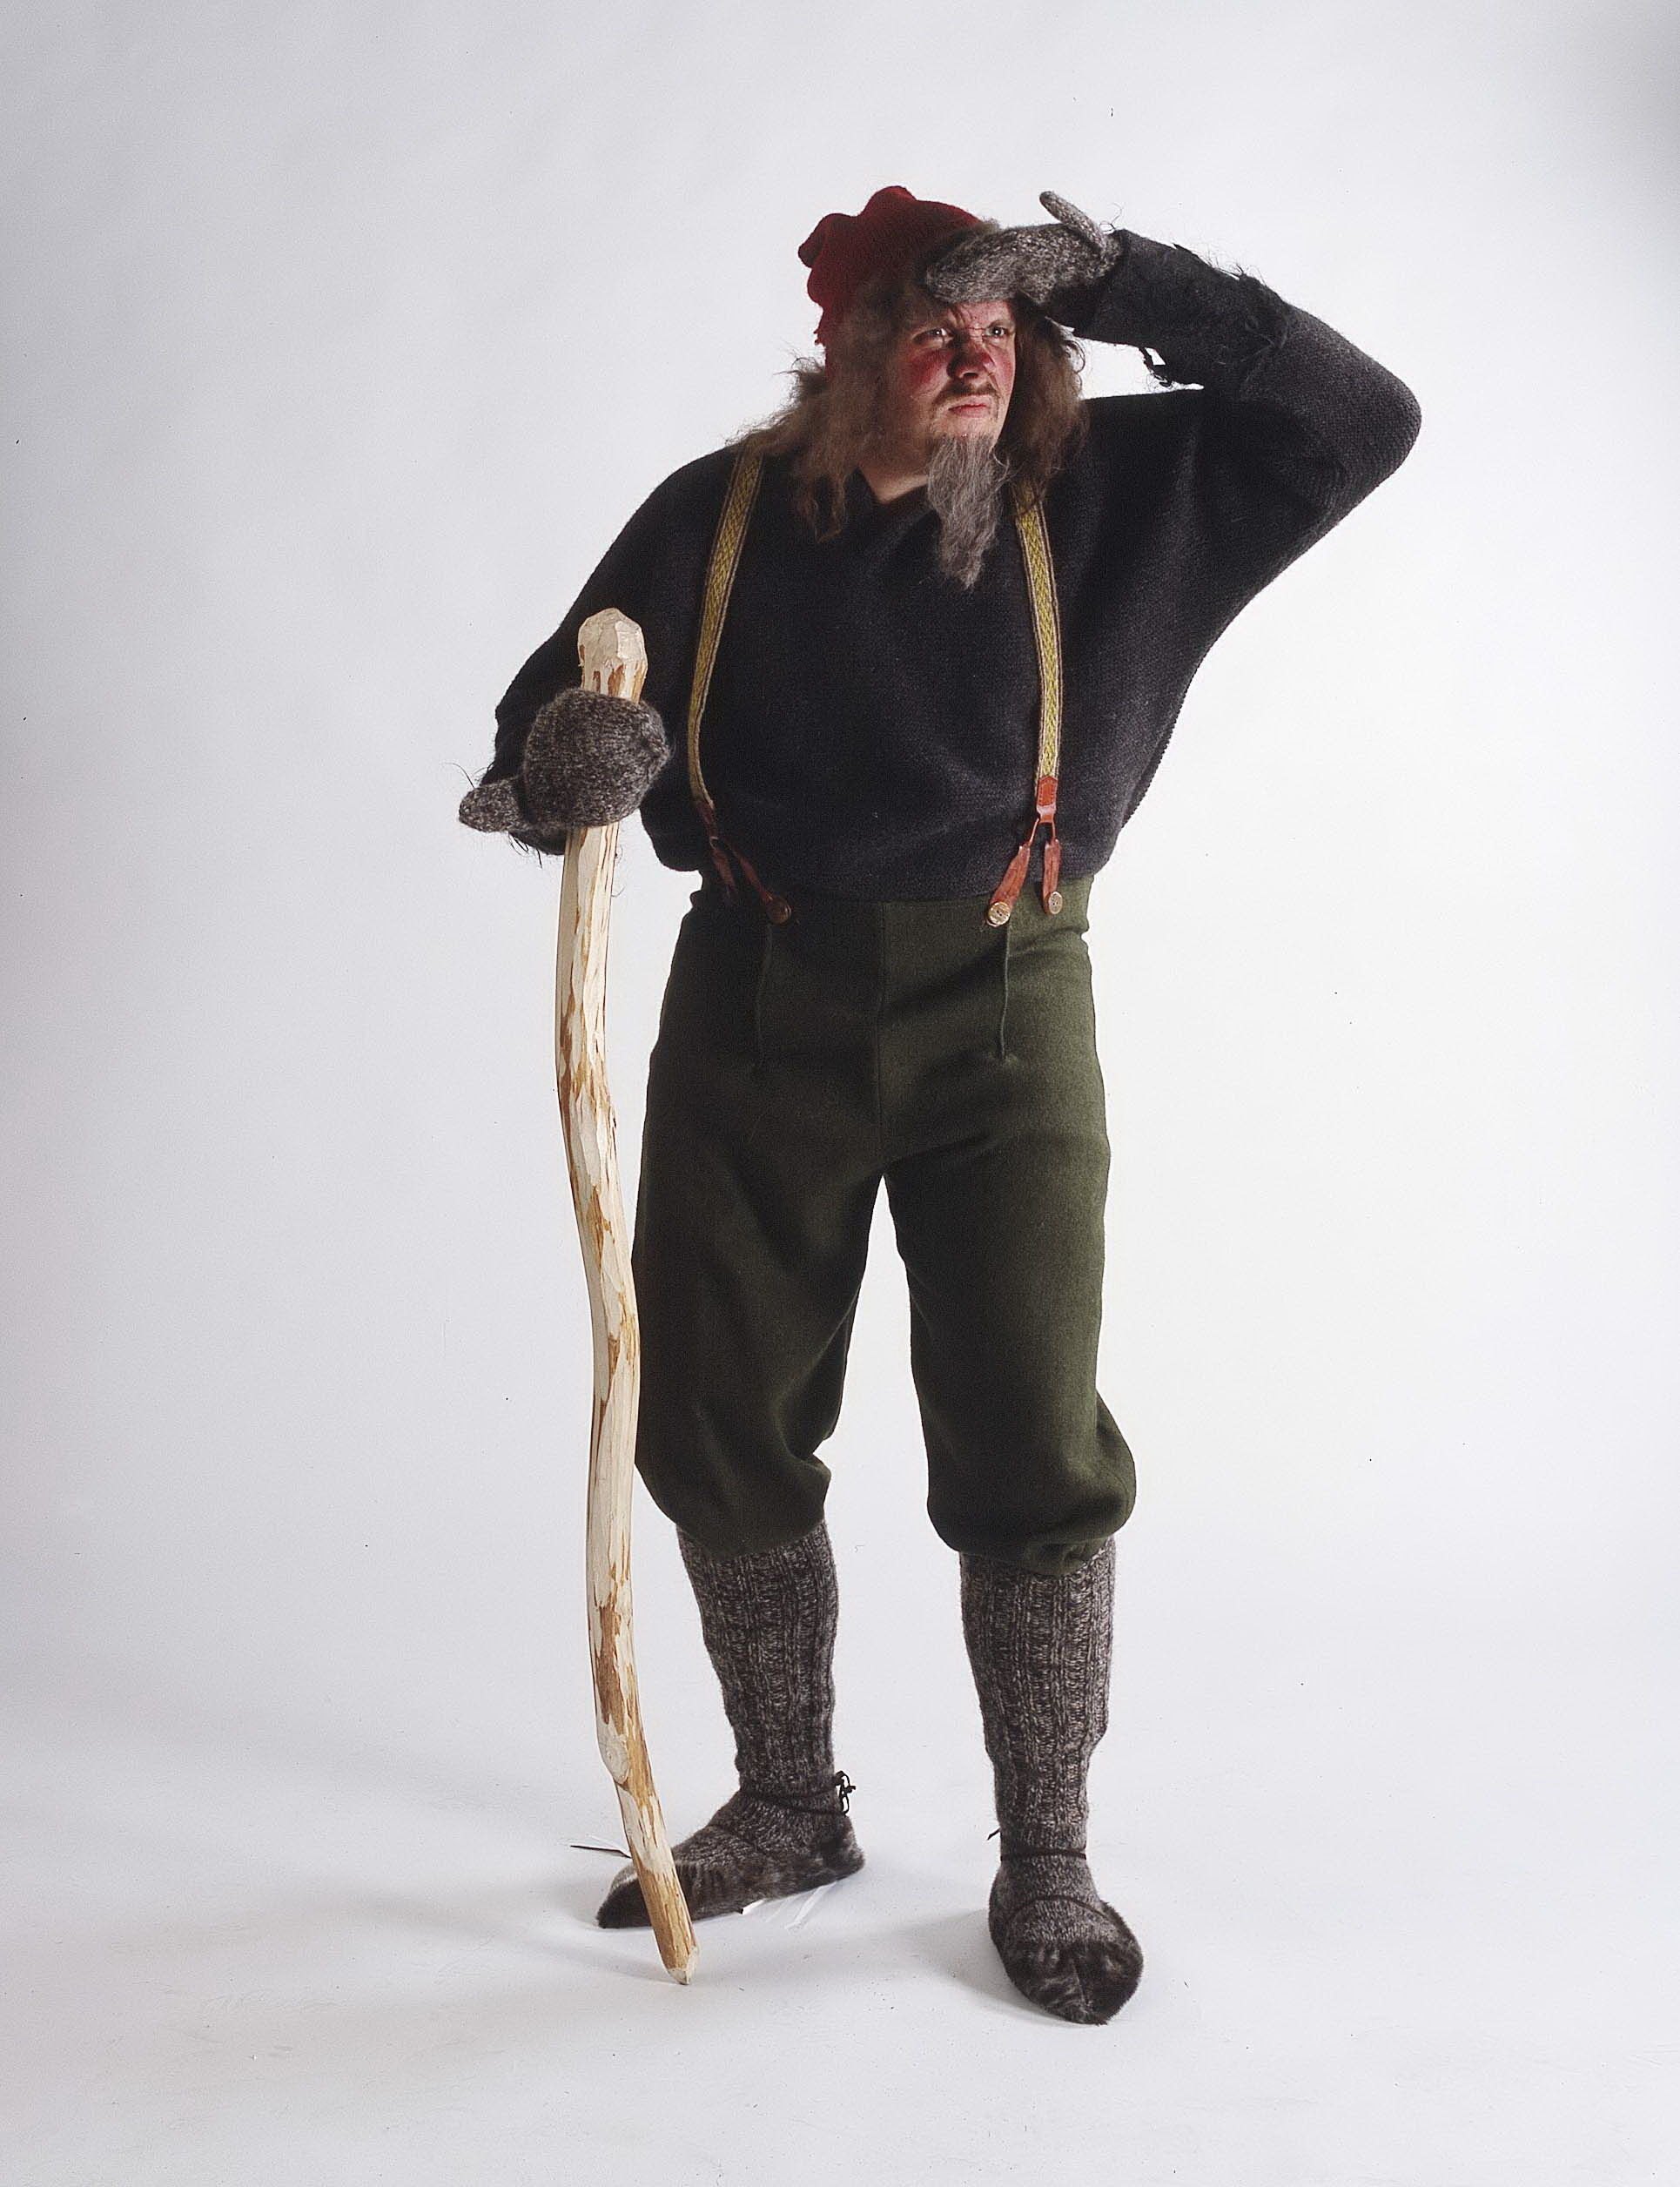 The Icelandic Yule | Upcoming events and exhibitions | Þjóðminjasafn ...